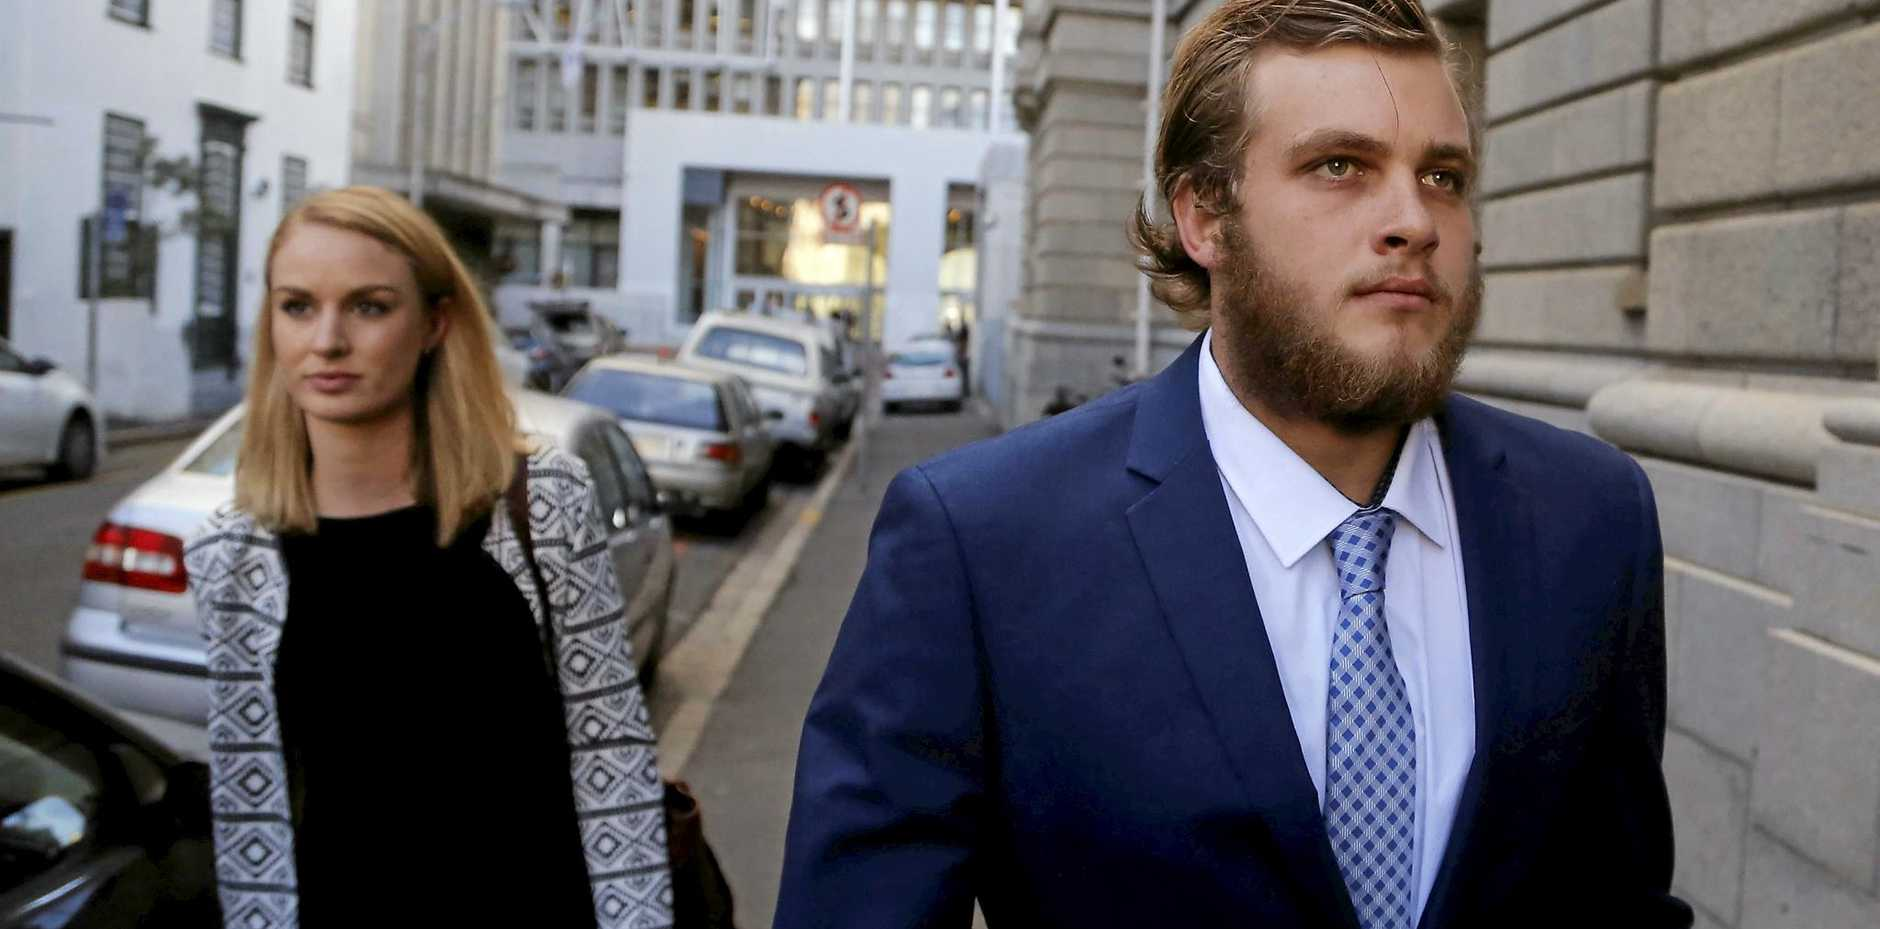 ACCUSED: South African murder accused Henri van Breda arrives at the high court in the city of Cape Town, South Africa. Van Breda, faces three counts of murder for allegedly killing his parents and older brother with an axe.